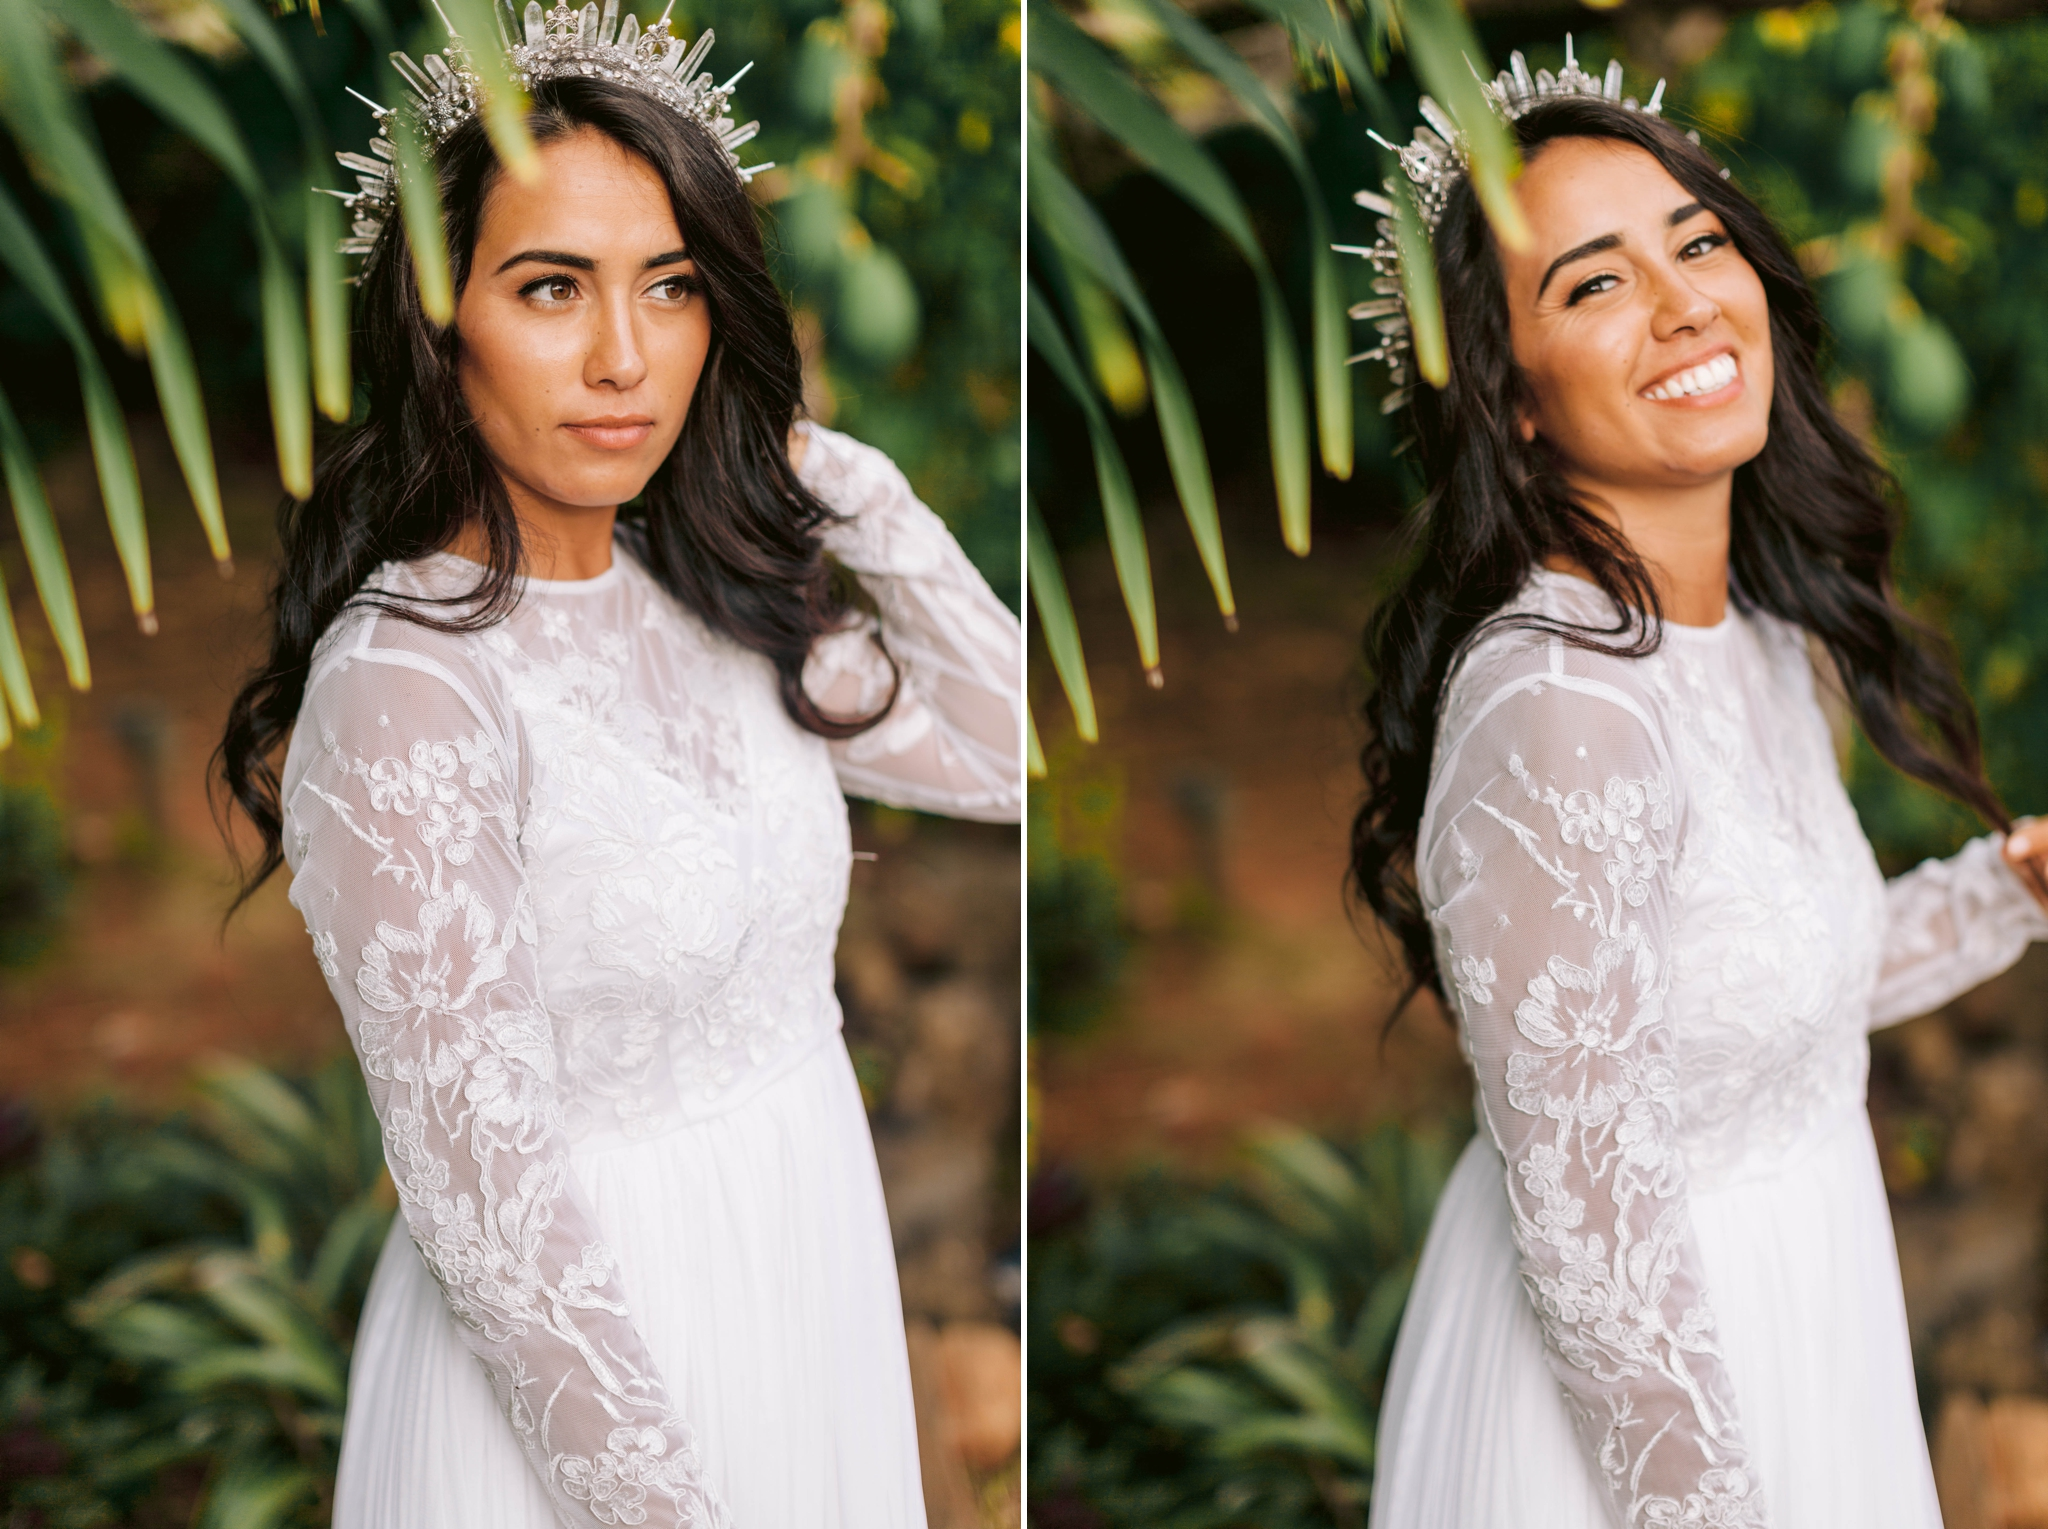 Hawaiian Bridal Portraits - Bride is wearing a wedding dress by asos and a unique crown under palm trees - Ana + Elijah - Wedding at Loulu Palm in Haleiwa, HI - Oahu Hawaii Wedding Photographer